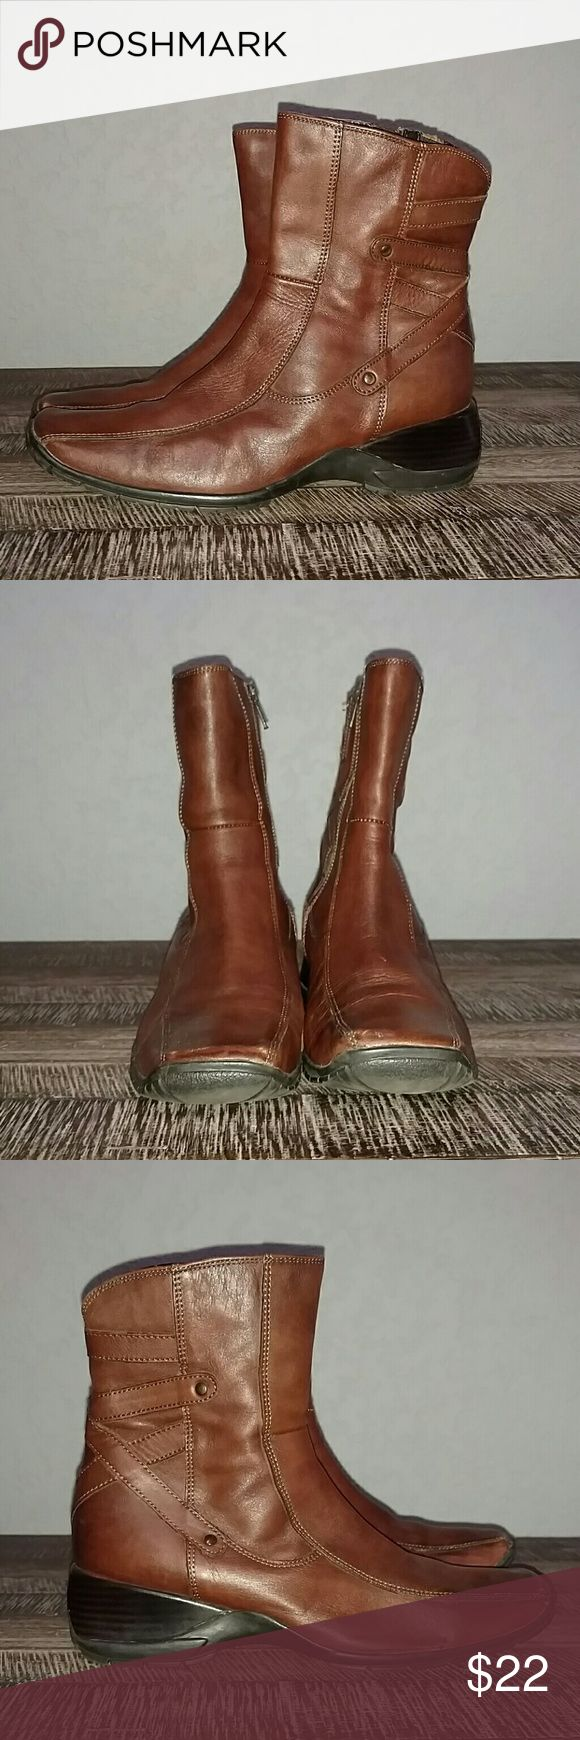 Clark's Brown Short Ankle Boots Clark's Brown shirt ankle booties. In excellent condition. Size 8.5 Clark's Shoes Ankle Boots & Booties